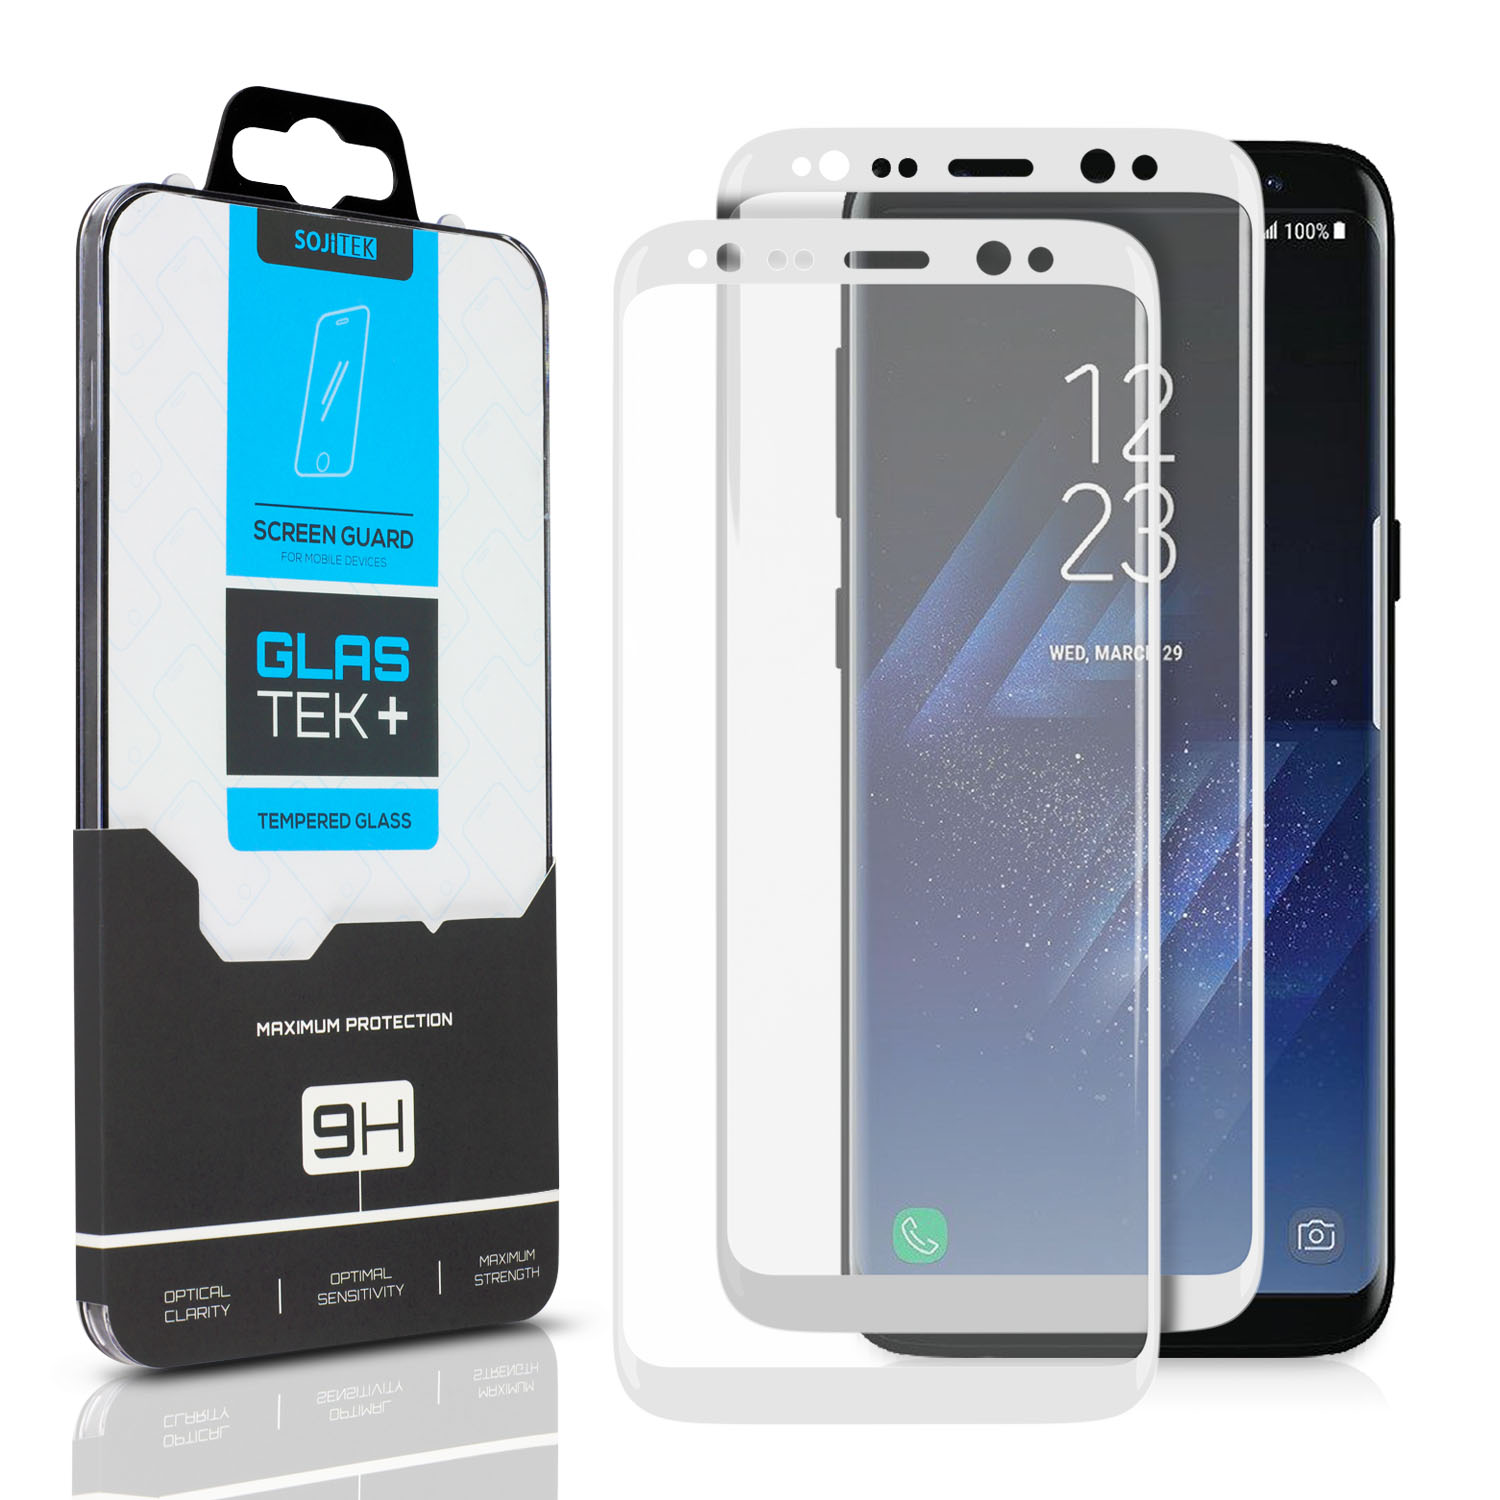 S8 Glas Sojitek Samsung Galaxy S8 Plus Screen Protector 2 Pack Full Coverage 3d Tempered Glass Sticking Well To Sides No Losing Adhesive Side Ultra